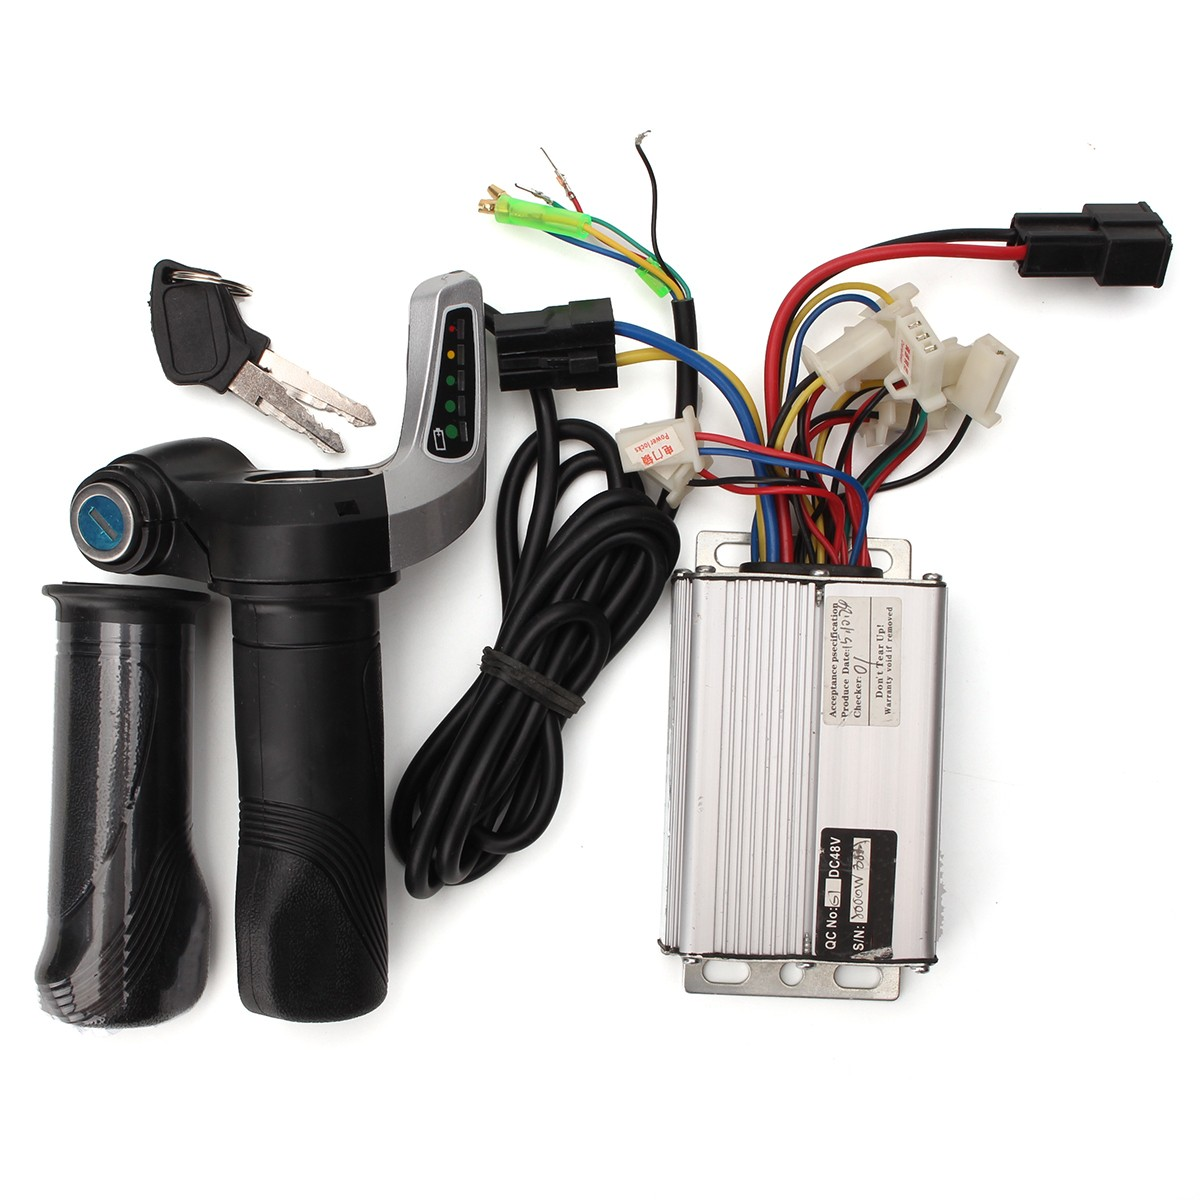 48V 1000W Electric Bike Motor Scooter Speed Controller w/Throttl